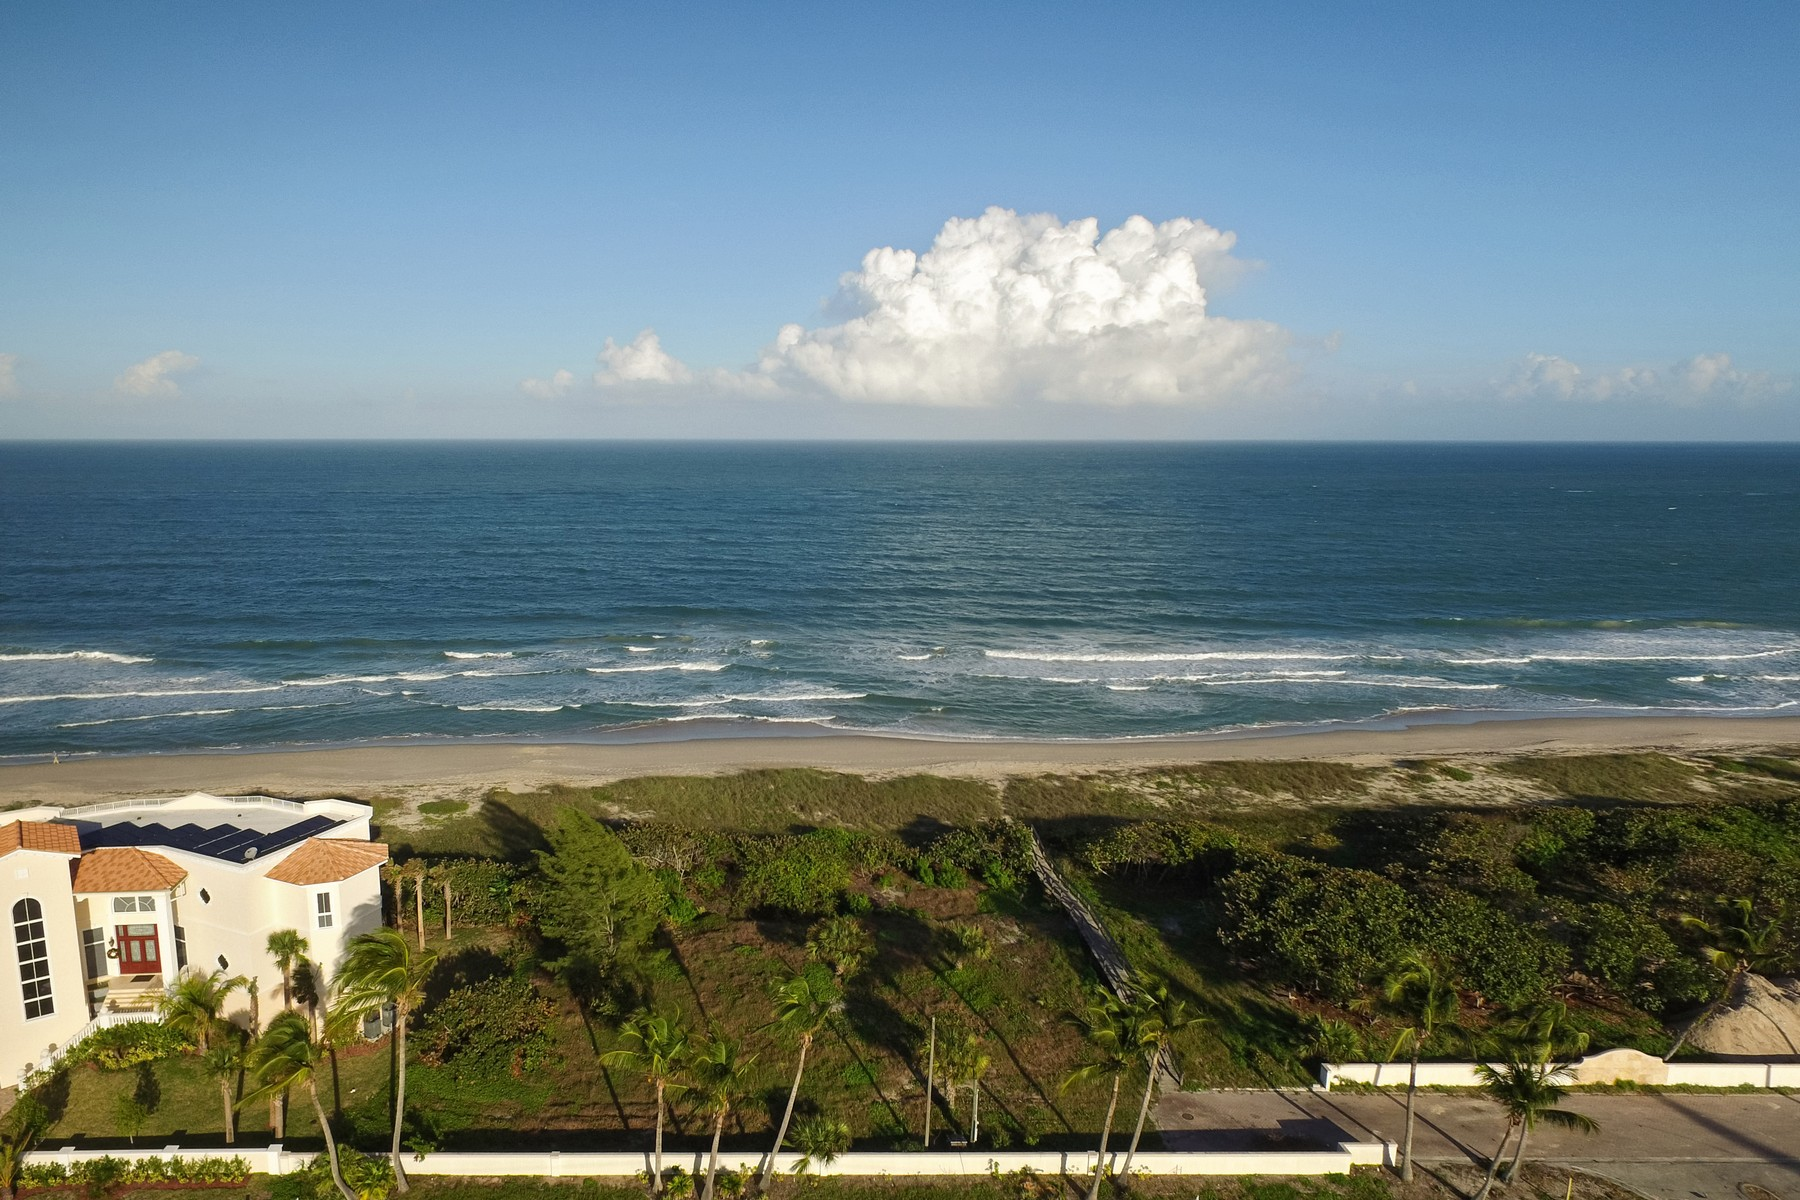 Terreno por un Venta en Outstanding Oceanfront Homesite in Ft Pierce 4566 A1A Fort Pierce, Florida, 34949 Estados Unidos